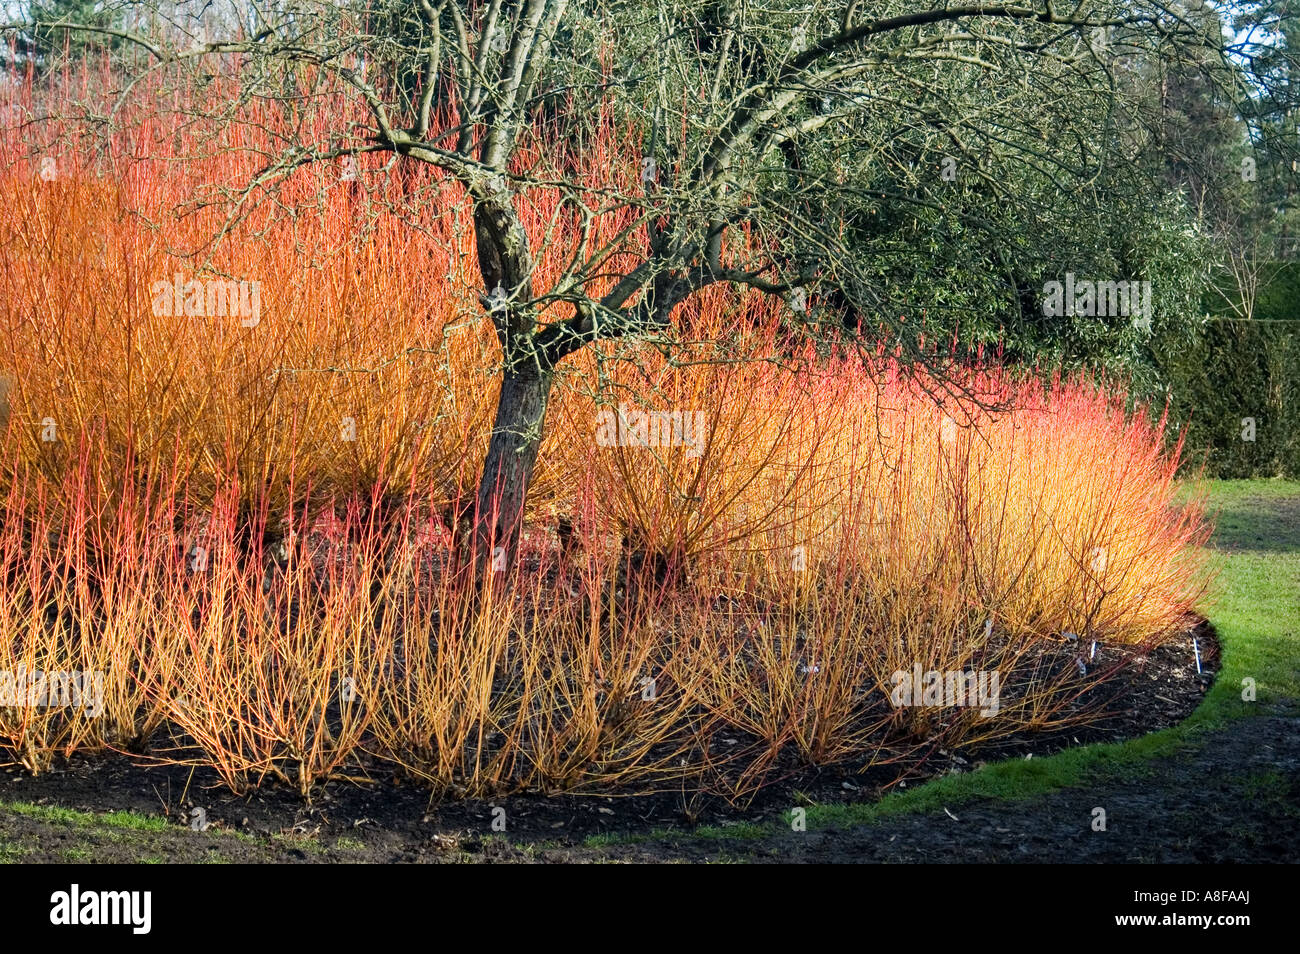 CORNUS SANGUINEA MAGIC FLAME SURROUNDING TREE BROADVIEW GARDENS HADLOW  COLLEGE KENT